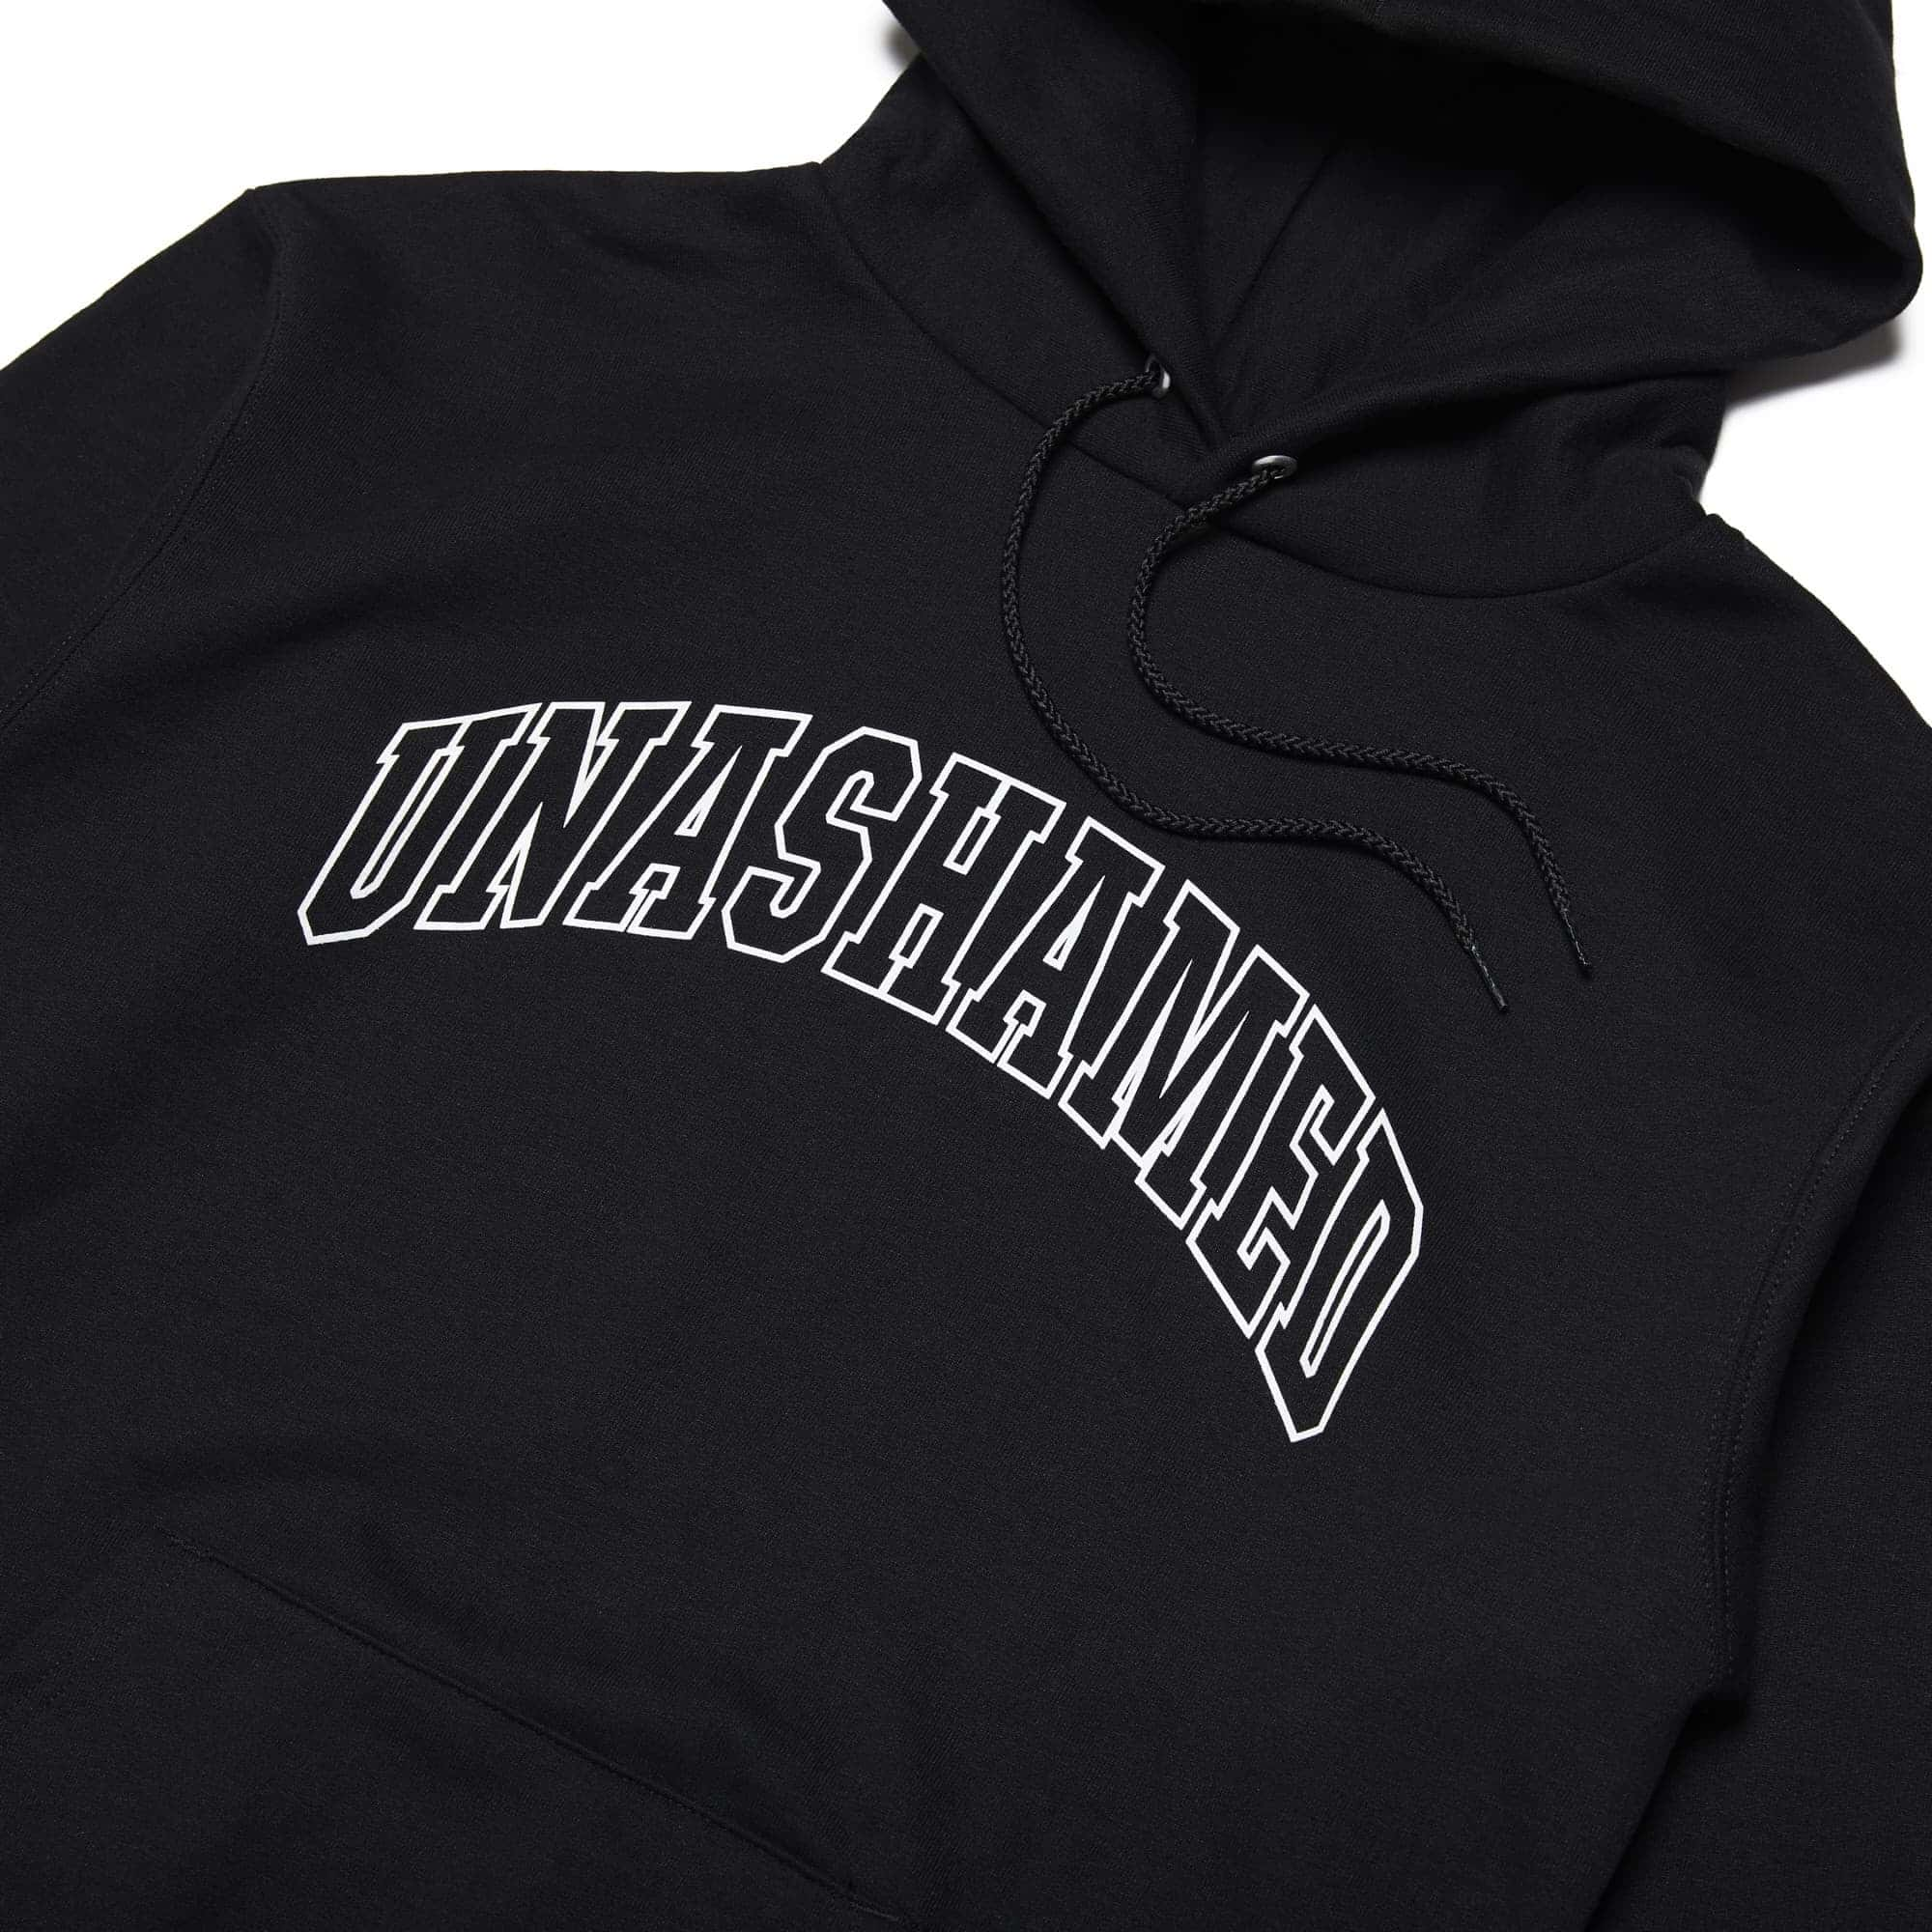 'Unashamed' Athletics x Champion Hoodie